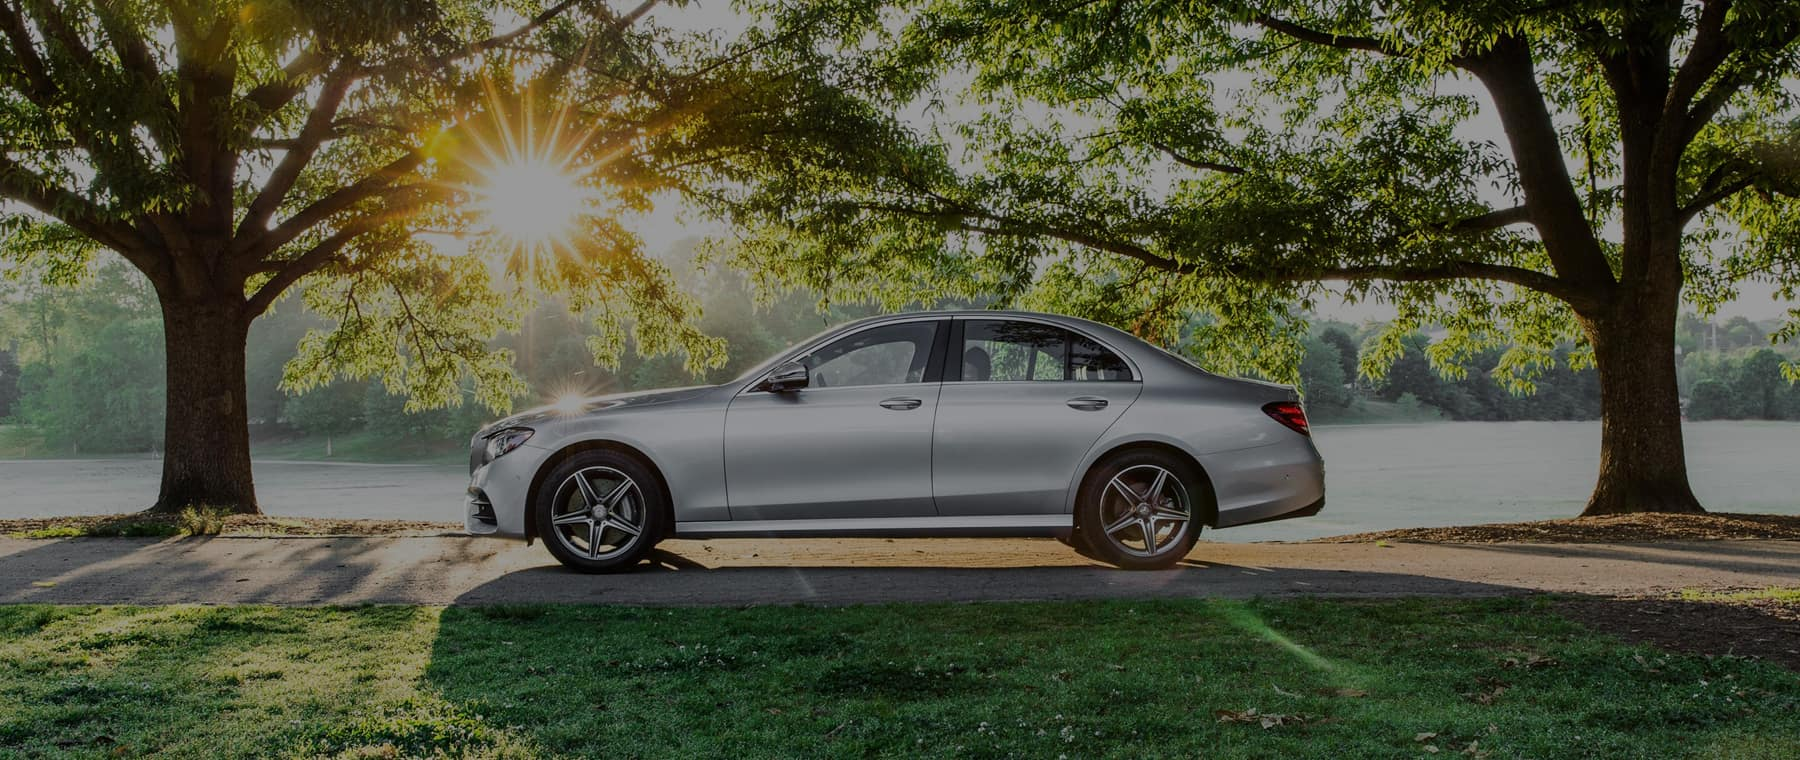 Mercedes benz of nanuet in ny new used car dealership for Mercedes benz of cincinnati new dealership